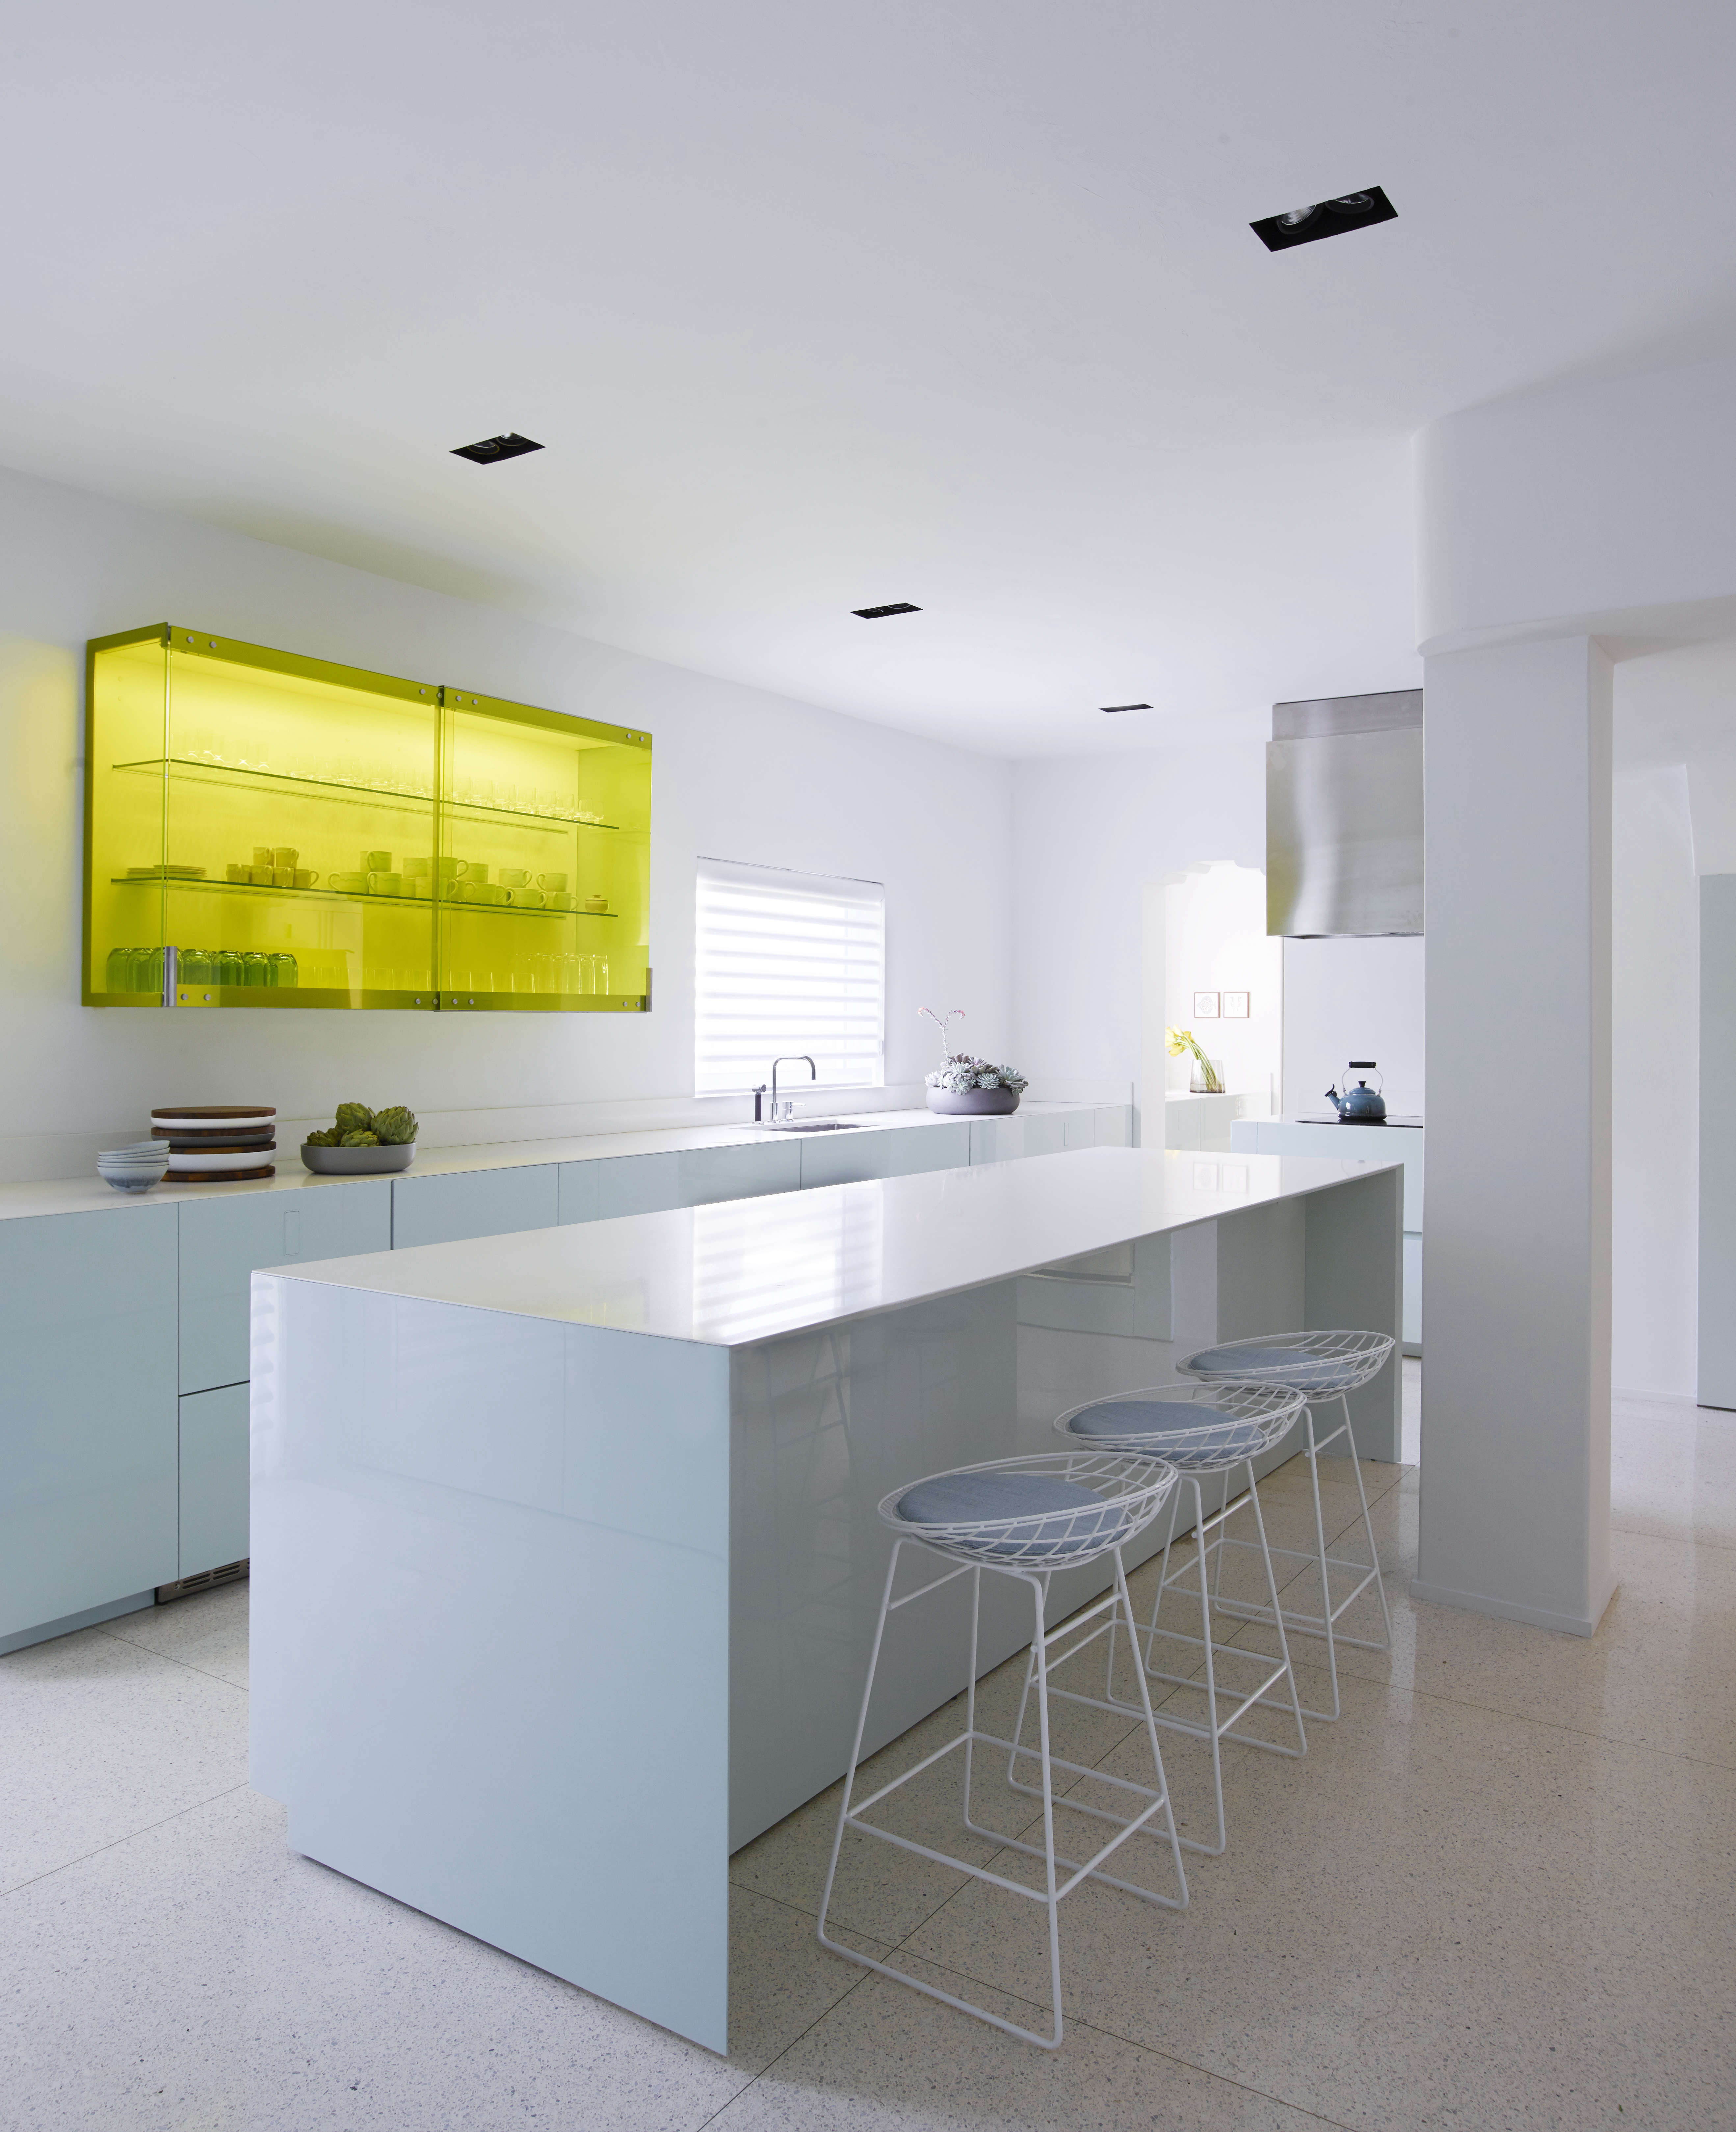 Minimalist Contemporary Kitchen In A Revived 1932 Miami Villa Belonging To  Contemporary Furniture Dealer Stephan Weishaupt